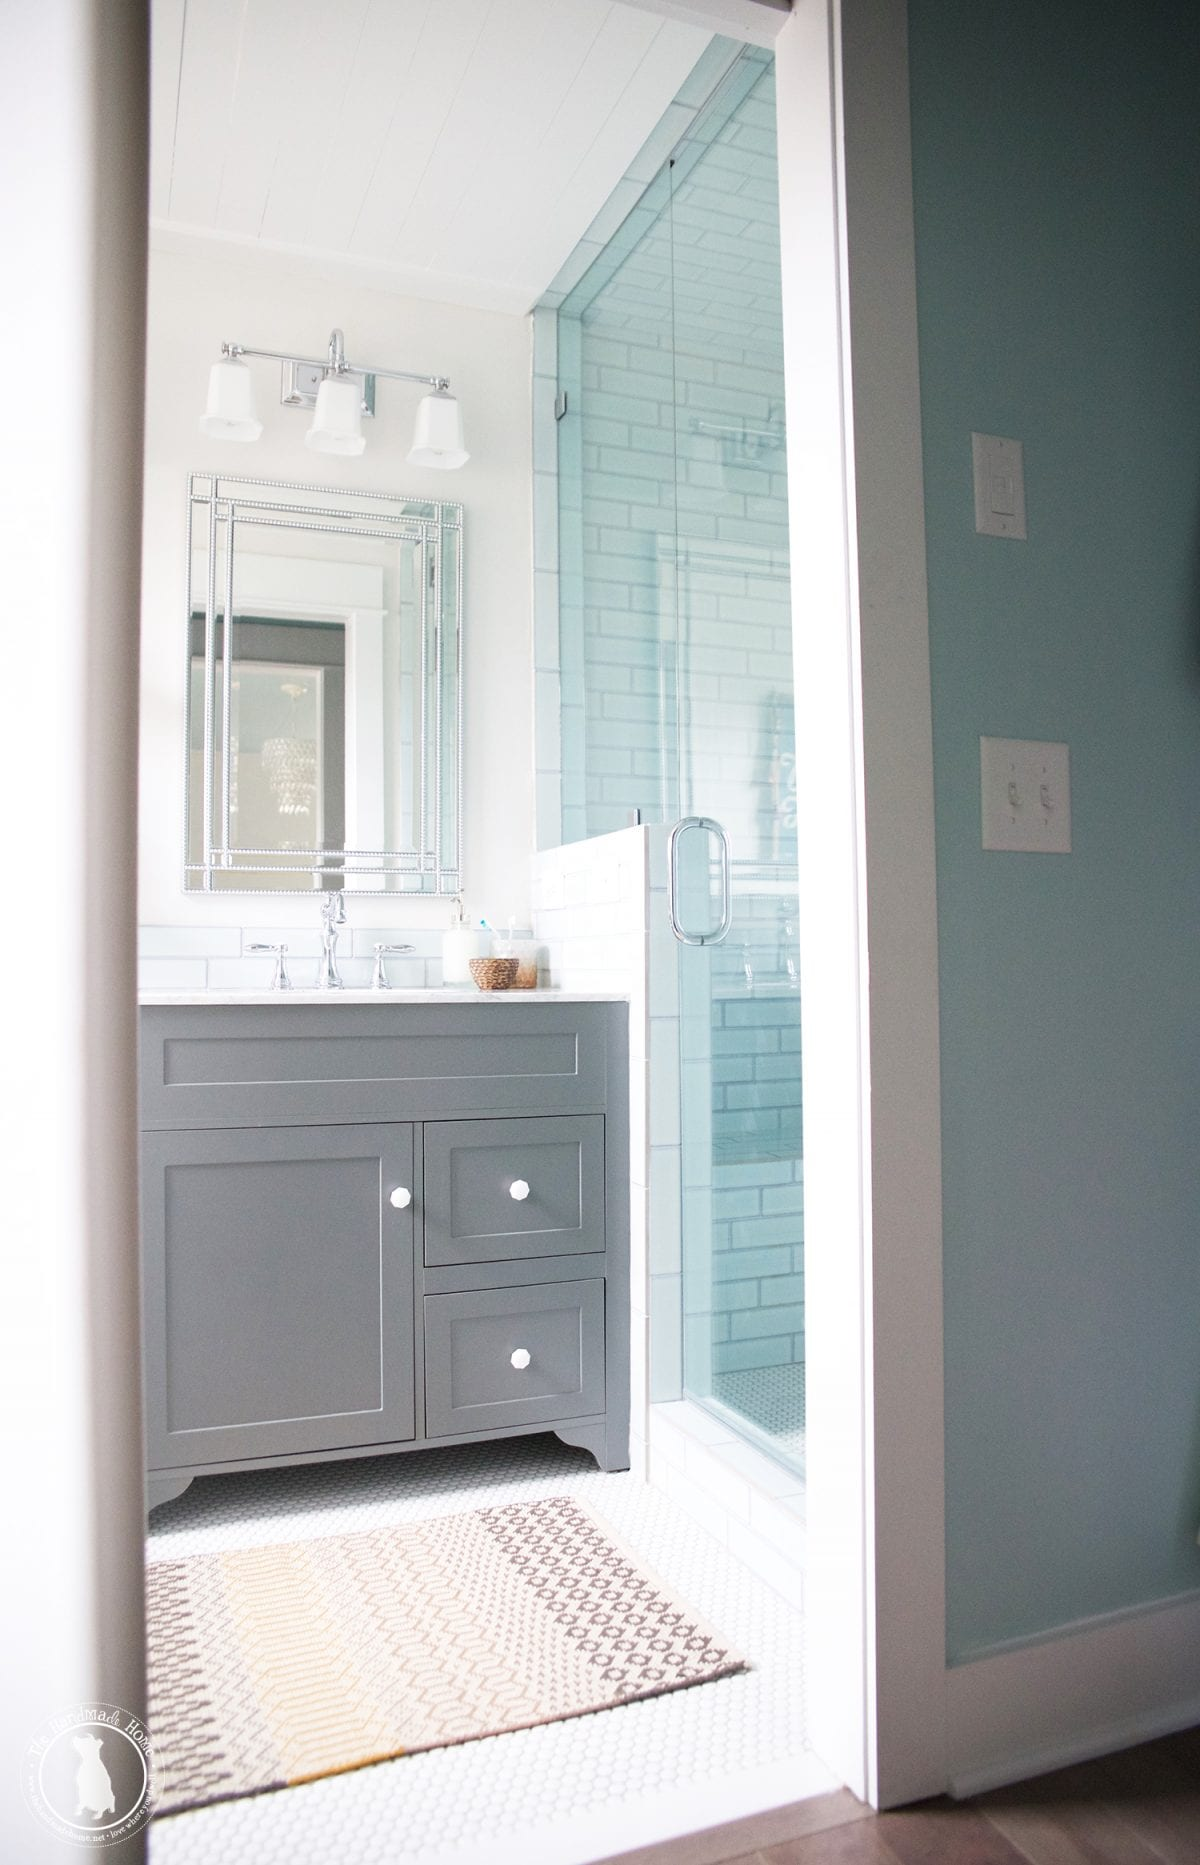 Vanity Light Makeover : bathroom makeover giveaway - 28 images - bathroom remodel contest large and beautiful photos, 88 ...